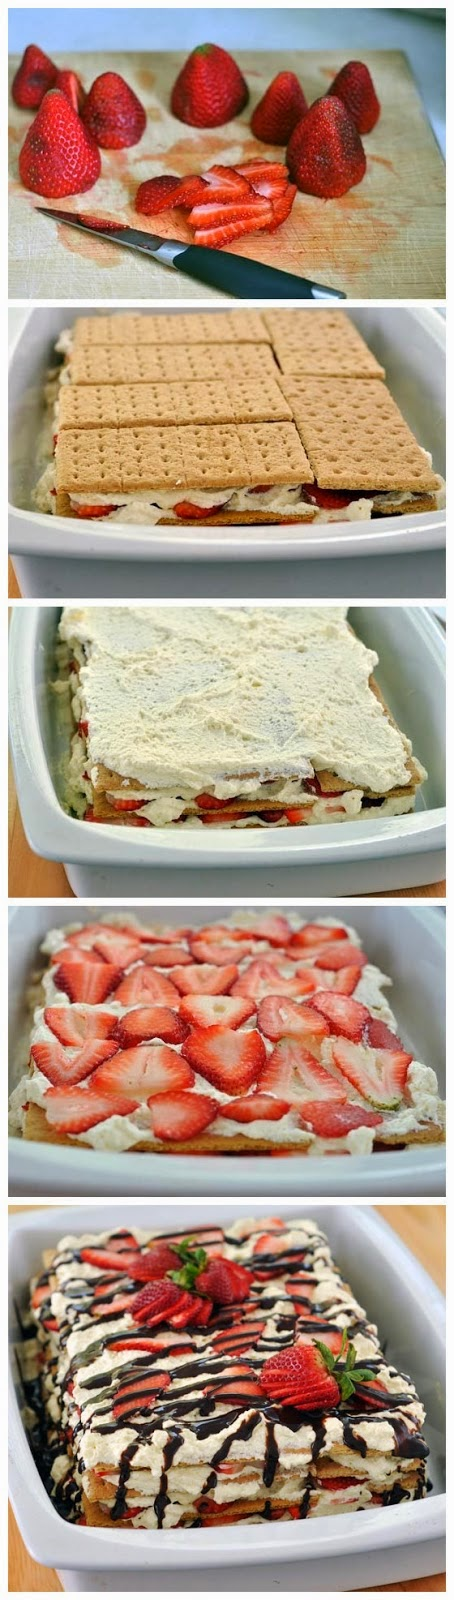 No-Bake-Strawberry-Icebox-Cake-Recipe